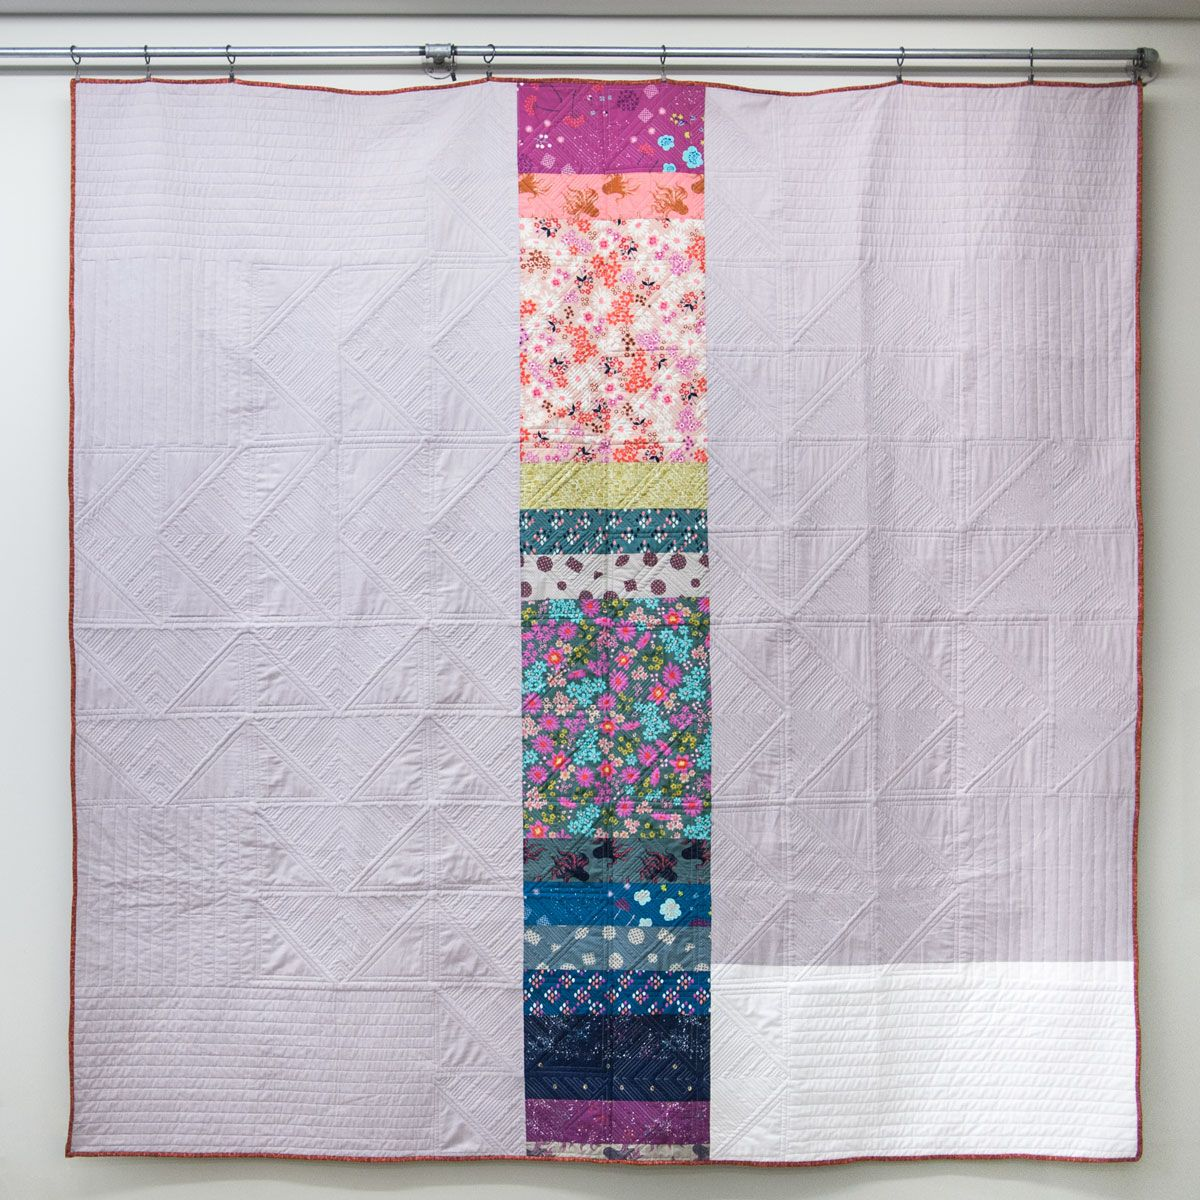 Jaime's Cotton and Steel Four Winds Quilt | Fancy Tiger Crafts ... : quilting crafts - Adamdwight.com